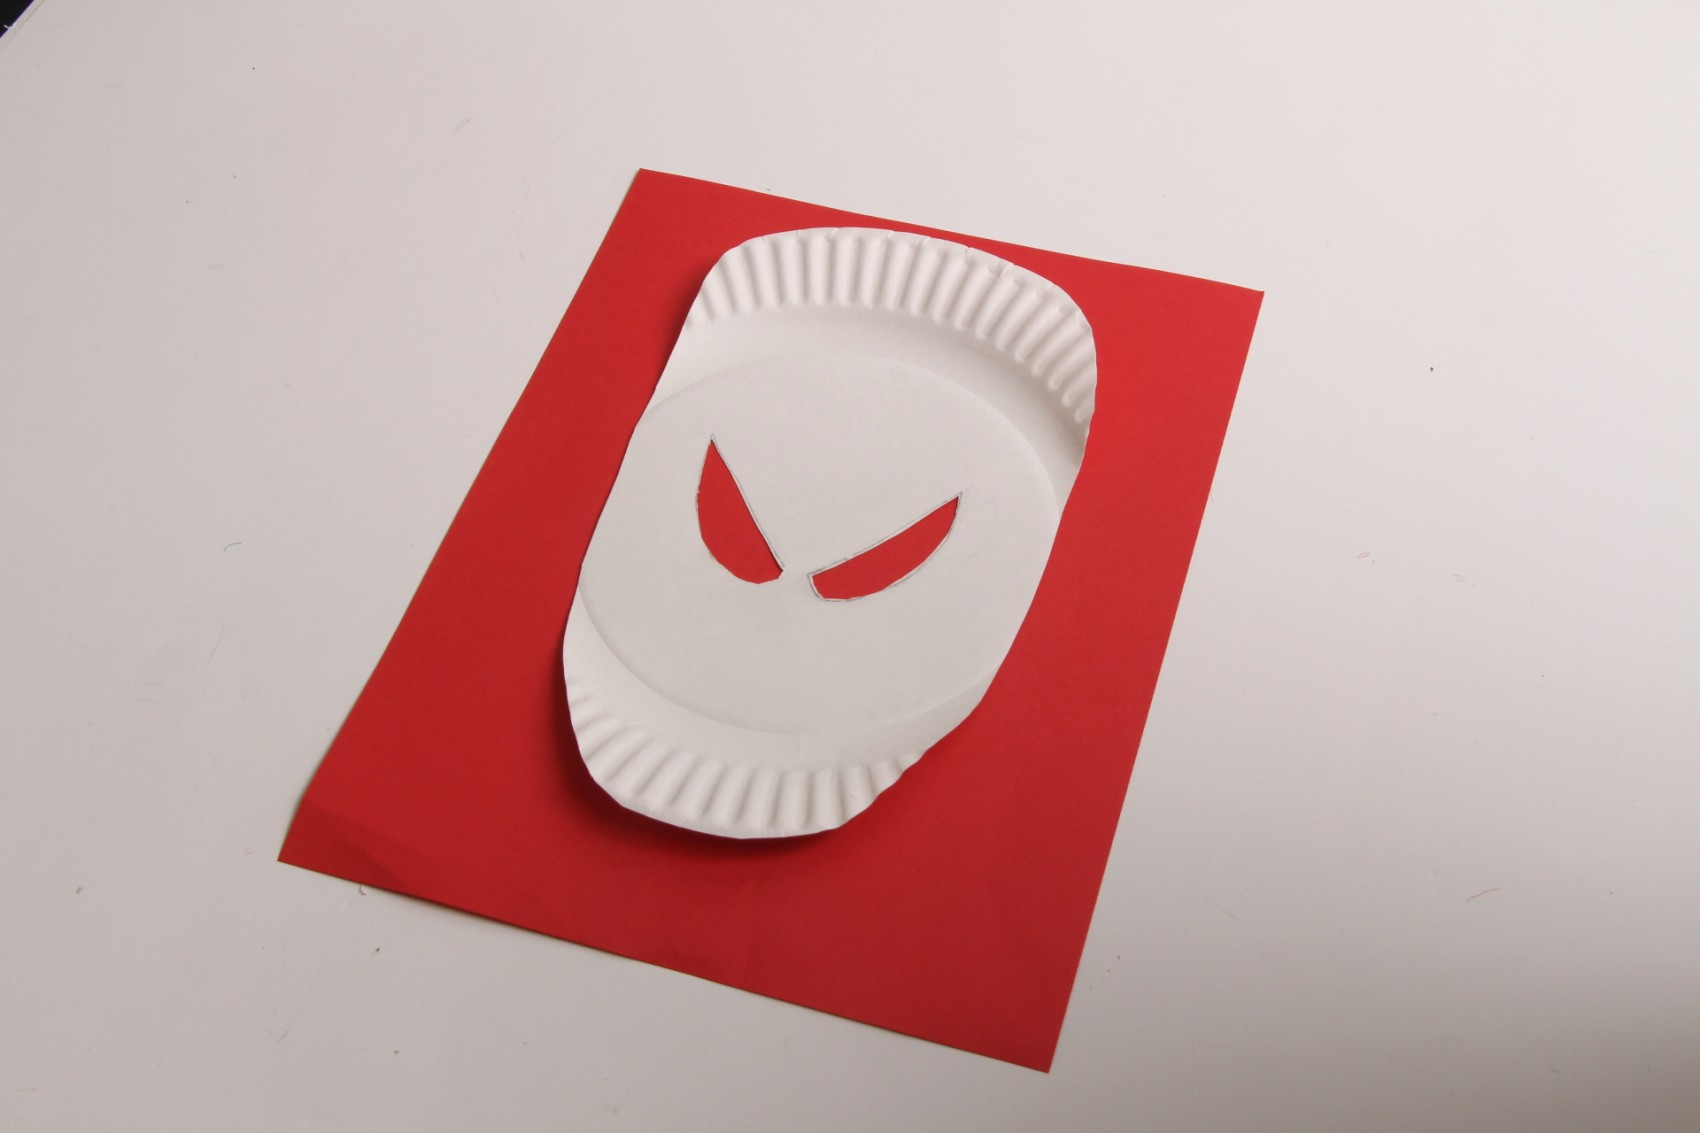 how to make a speaker using a paper plate